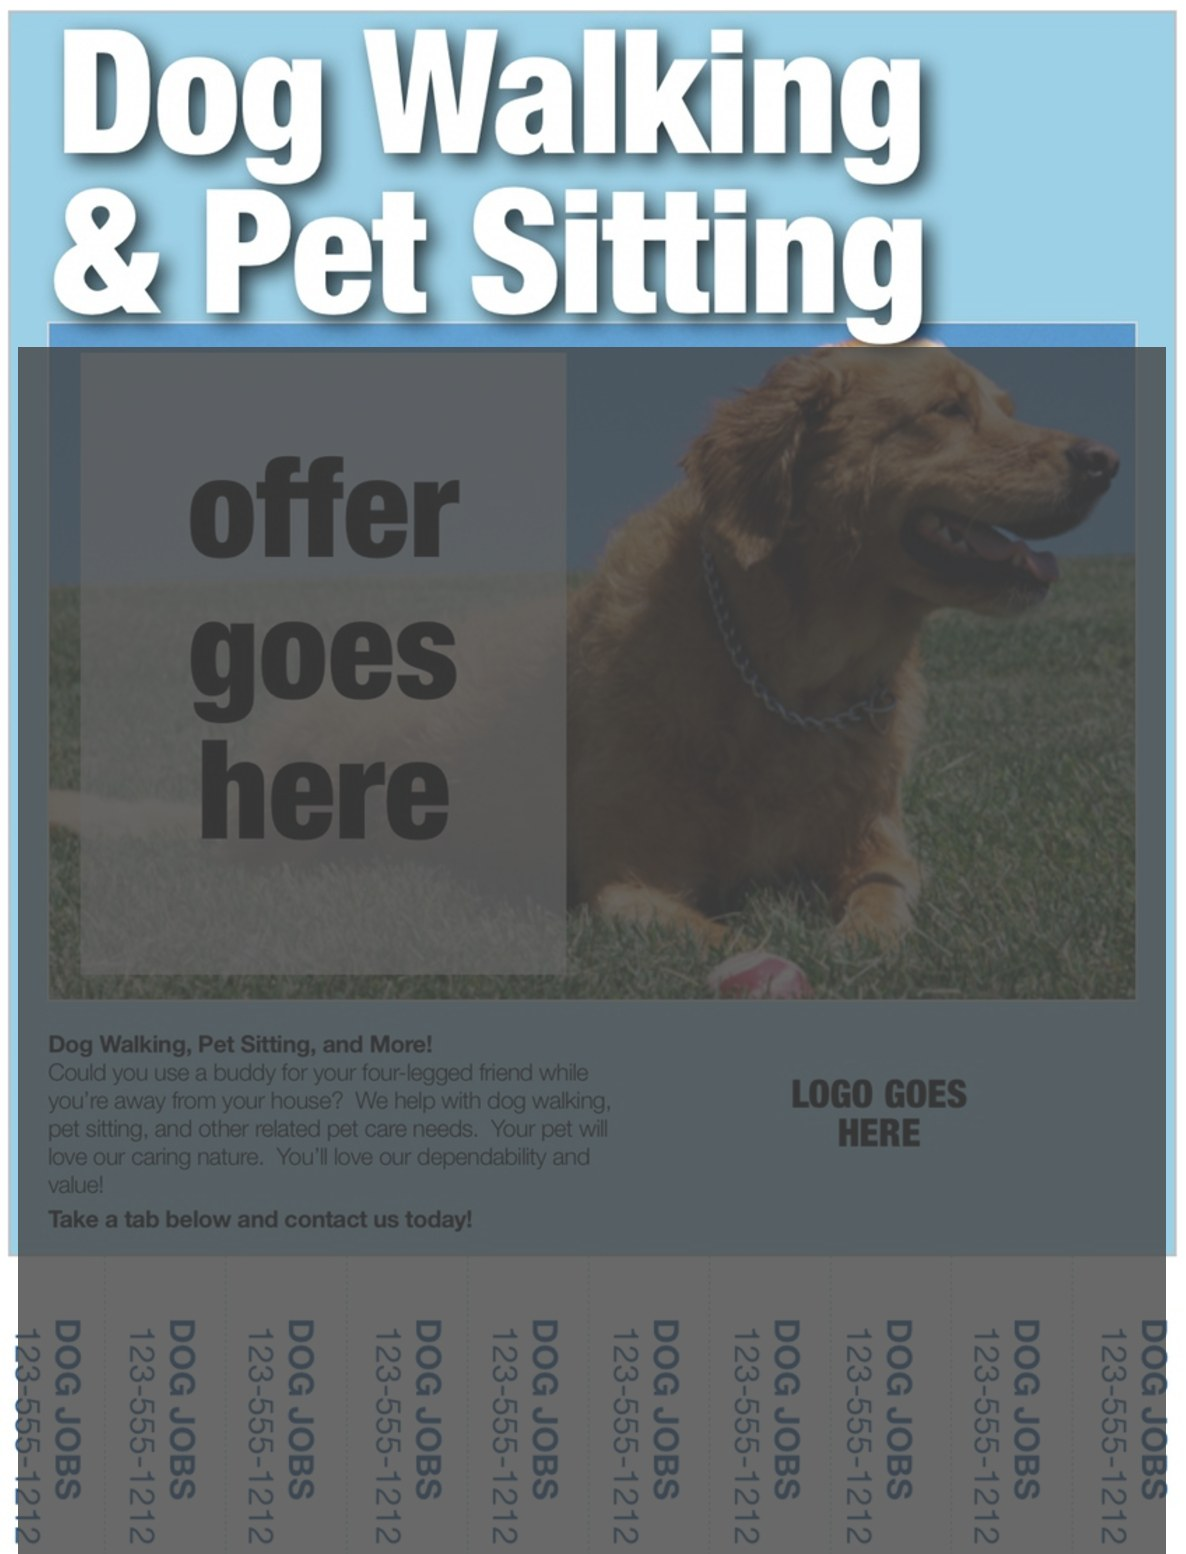 dog walking flyer title